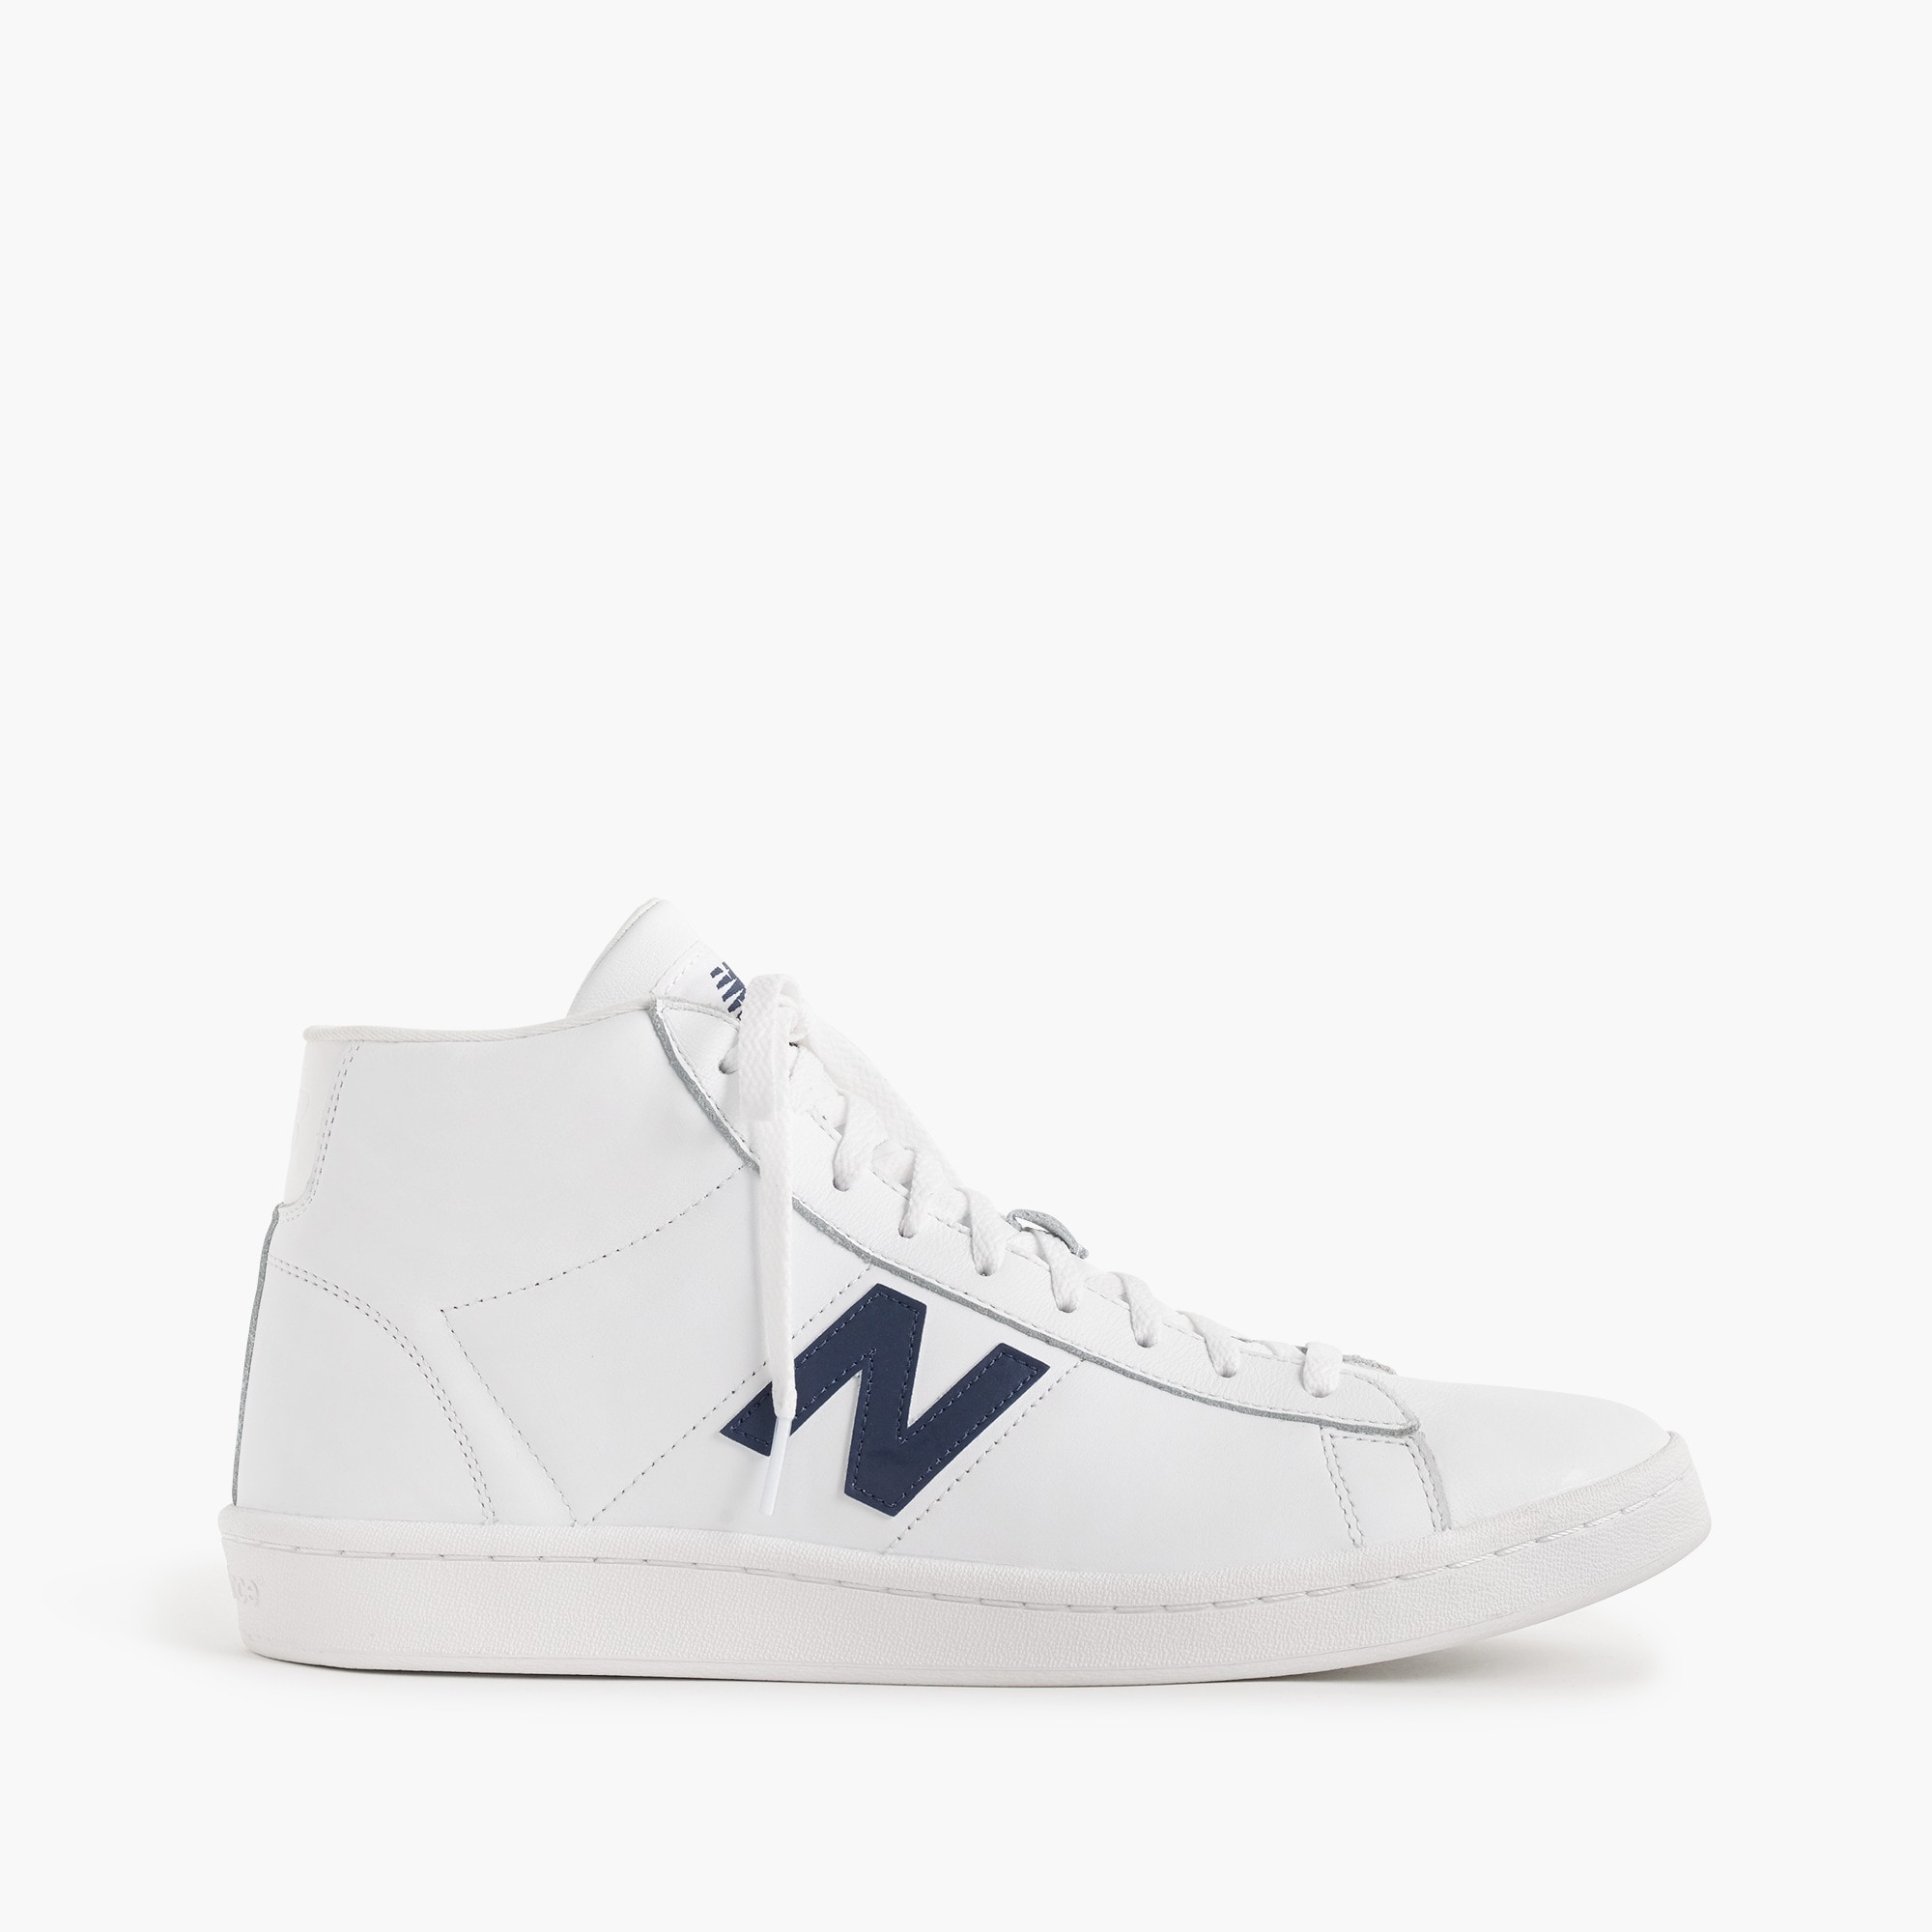 New Balance® for J.Crew 891 leather high-top sneakers